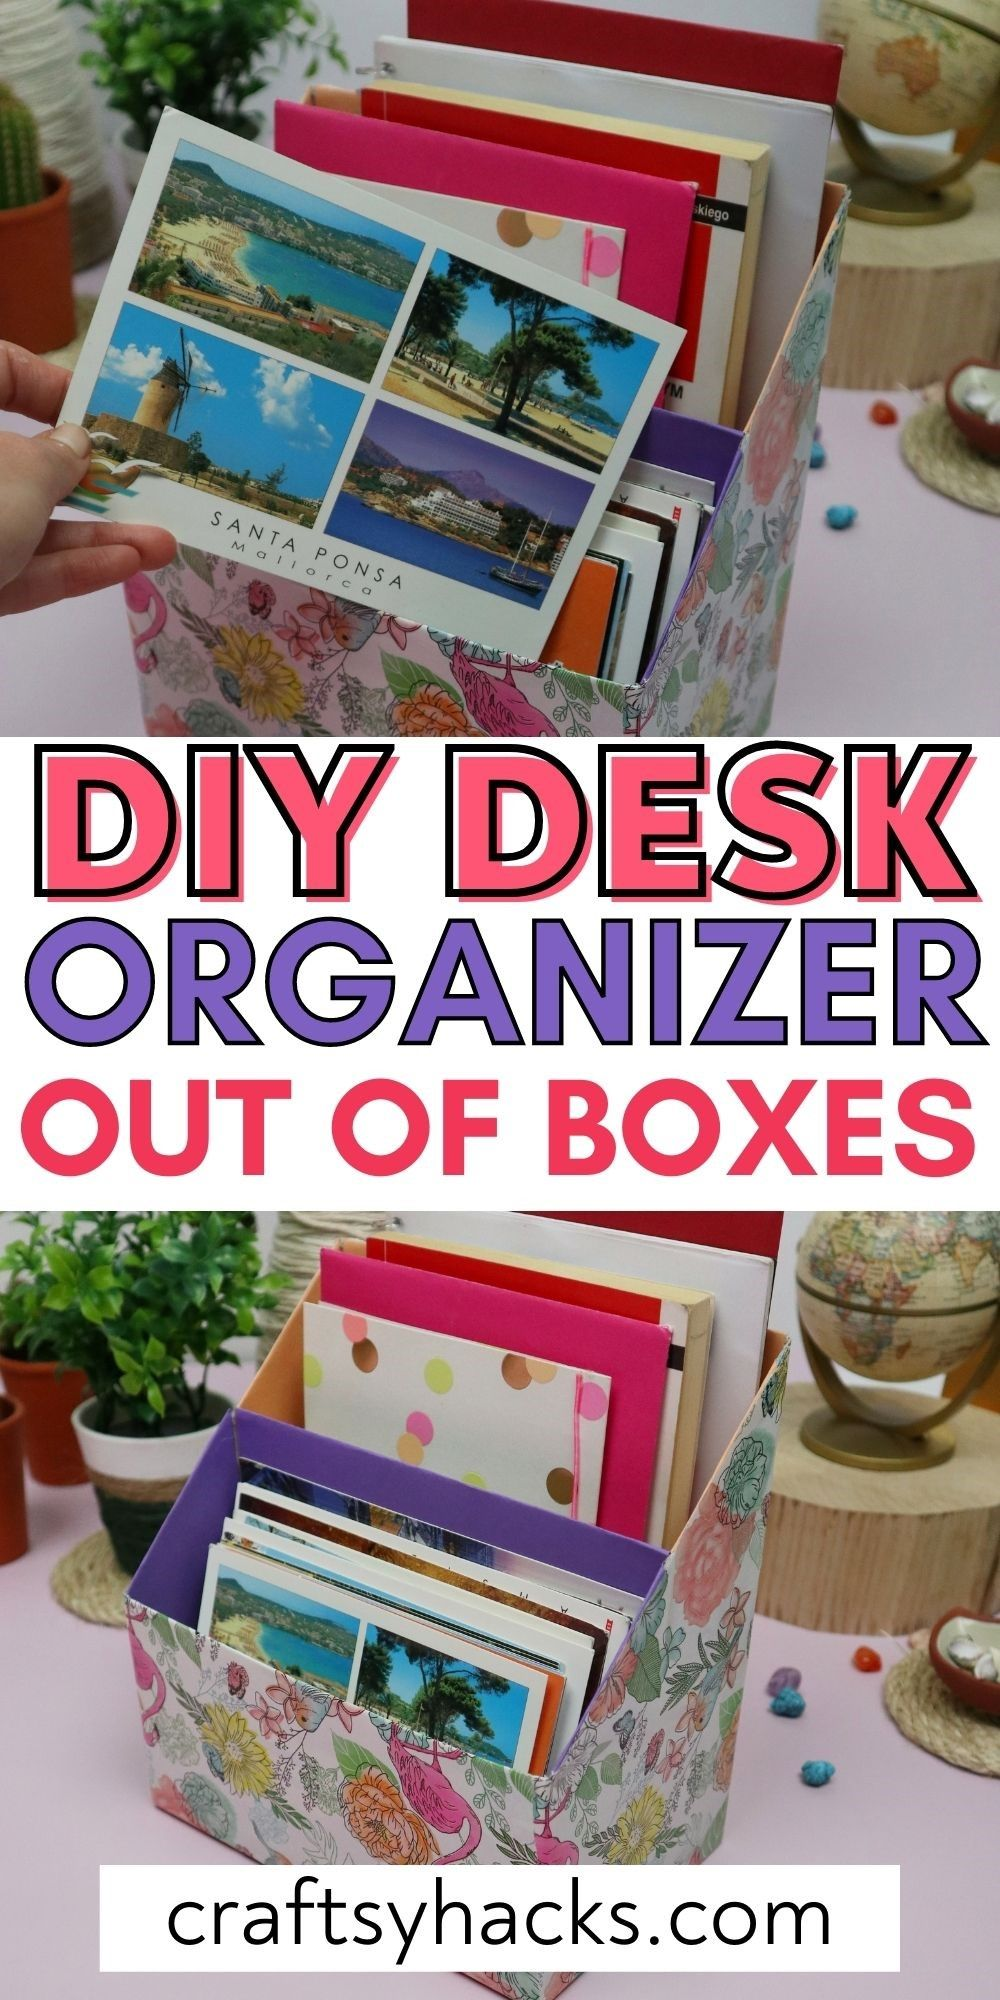 diy desk organizer out of boxes